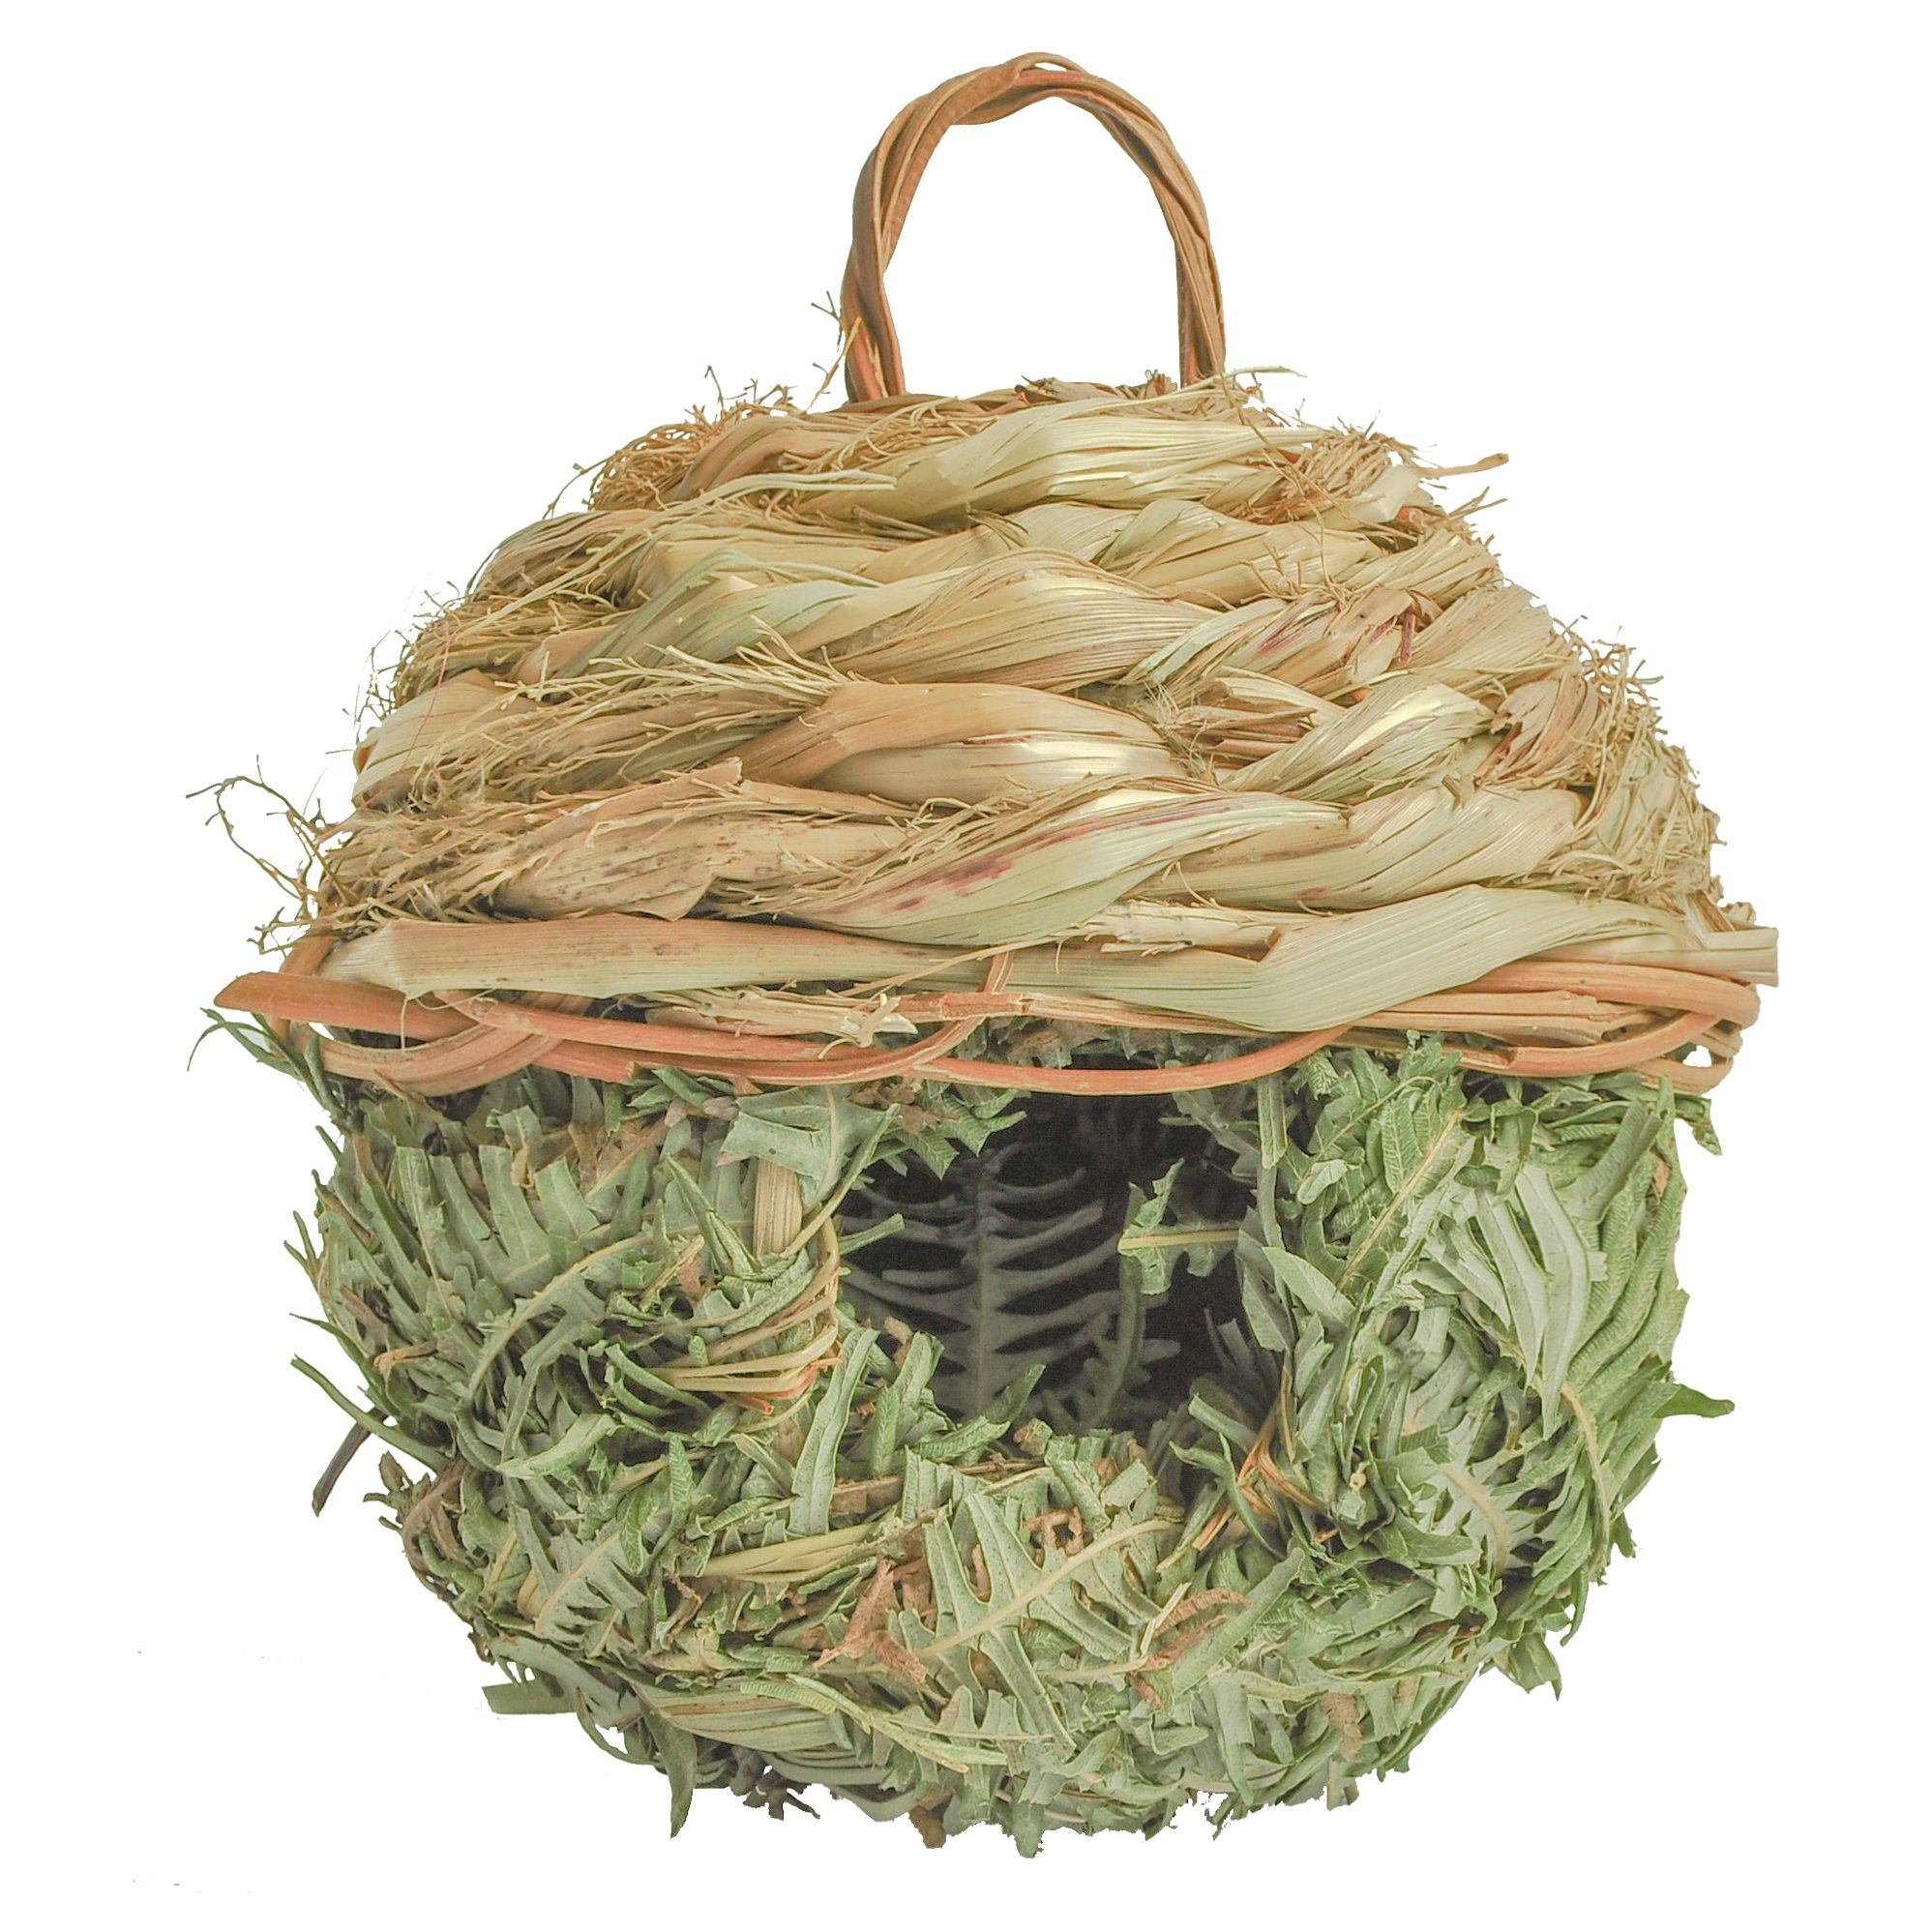 Gardirect Natural Birdhouse, Wild Bird Nest, Reed Weave Natural Roosting Pocket